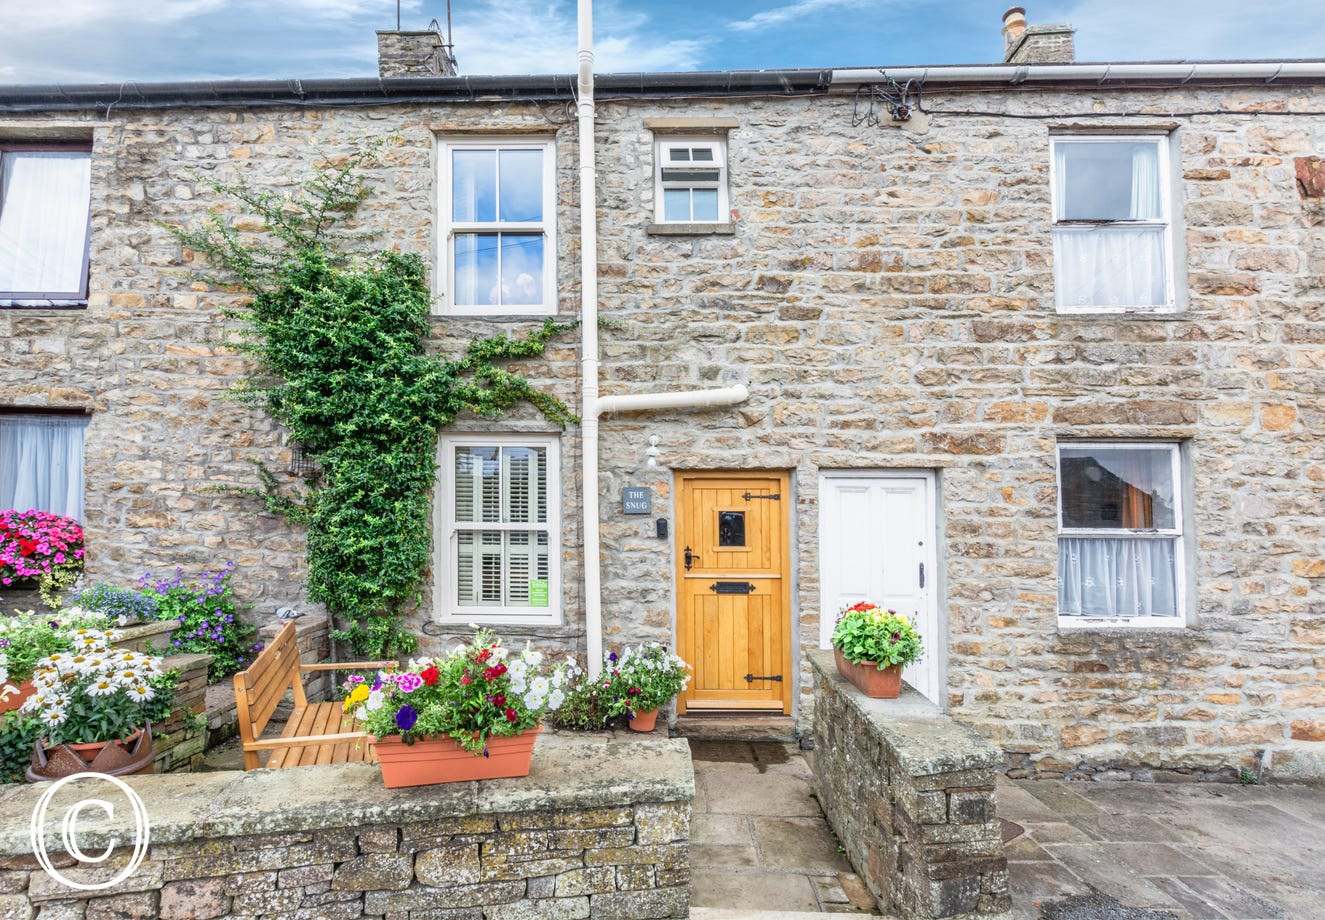 The Snug in a quiet position in central Hawes, close to the pubs, quirky shops and tearooms in this popular market town